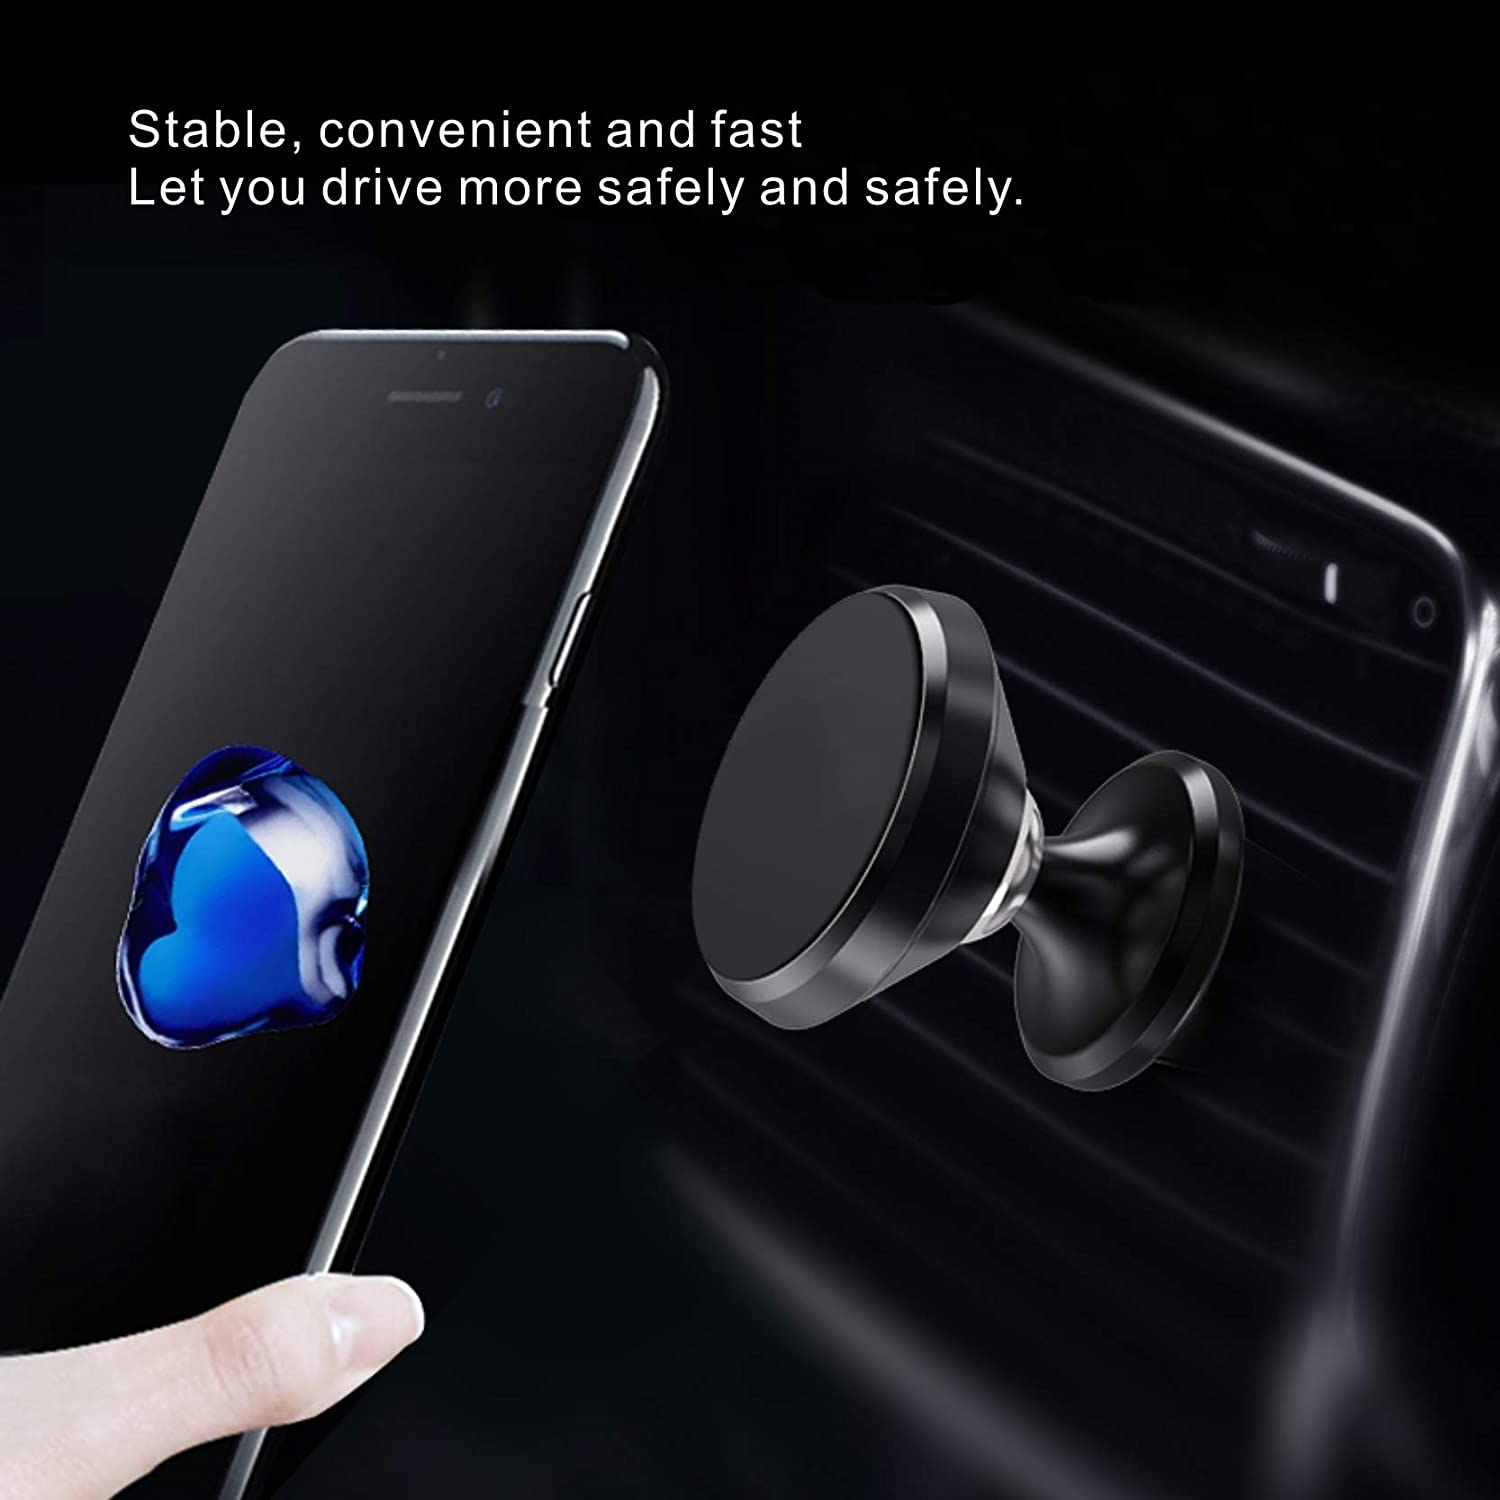 Universal Car Phone Mount Magnet Air Vent Mount 360/°c Car Phone Holder Fit car Phone Mount for iPhone 11 pro xs max xr x 8 7 6 Plus Samsung Galaxy note10 s10 s10 s10e s9 LG Huawei All Phones